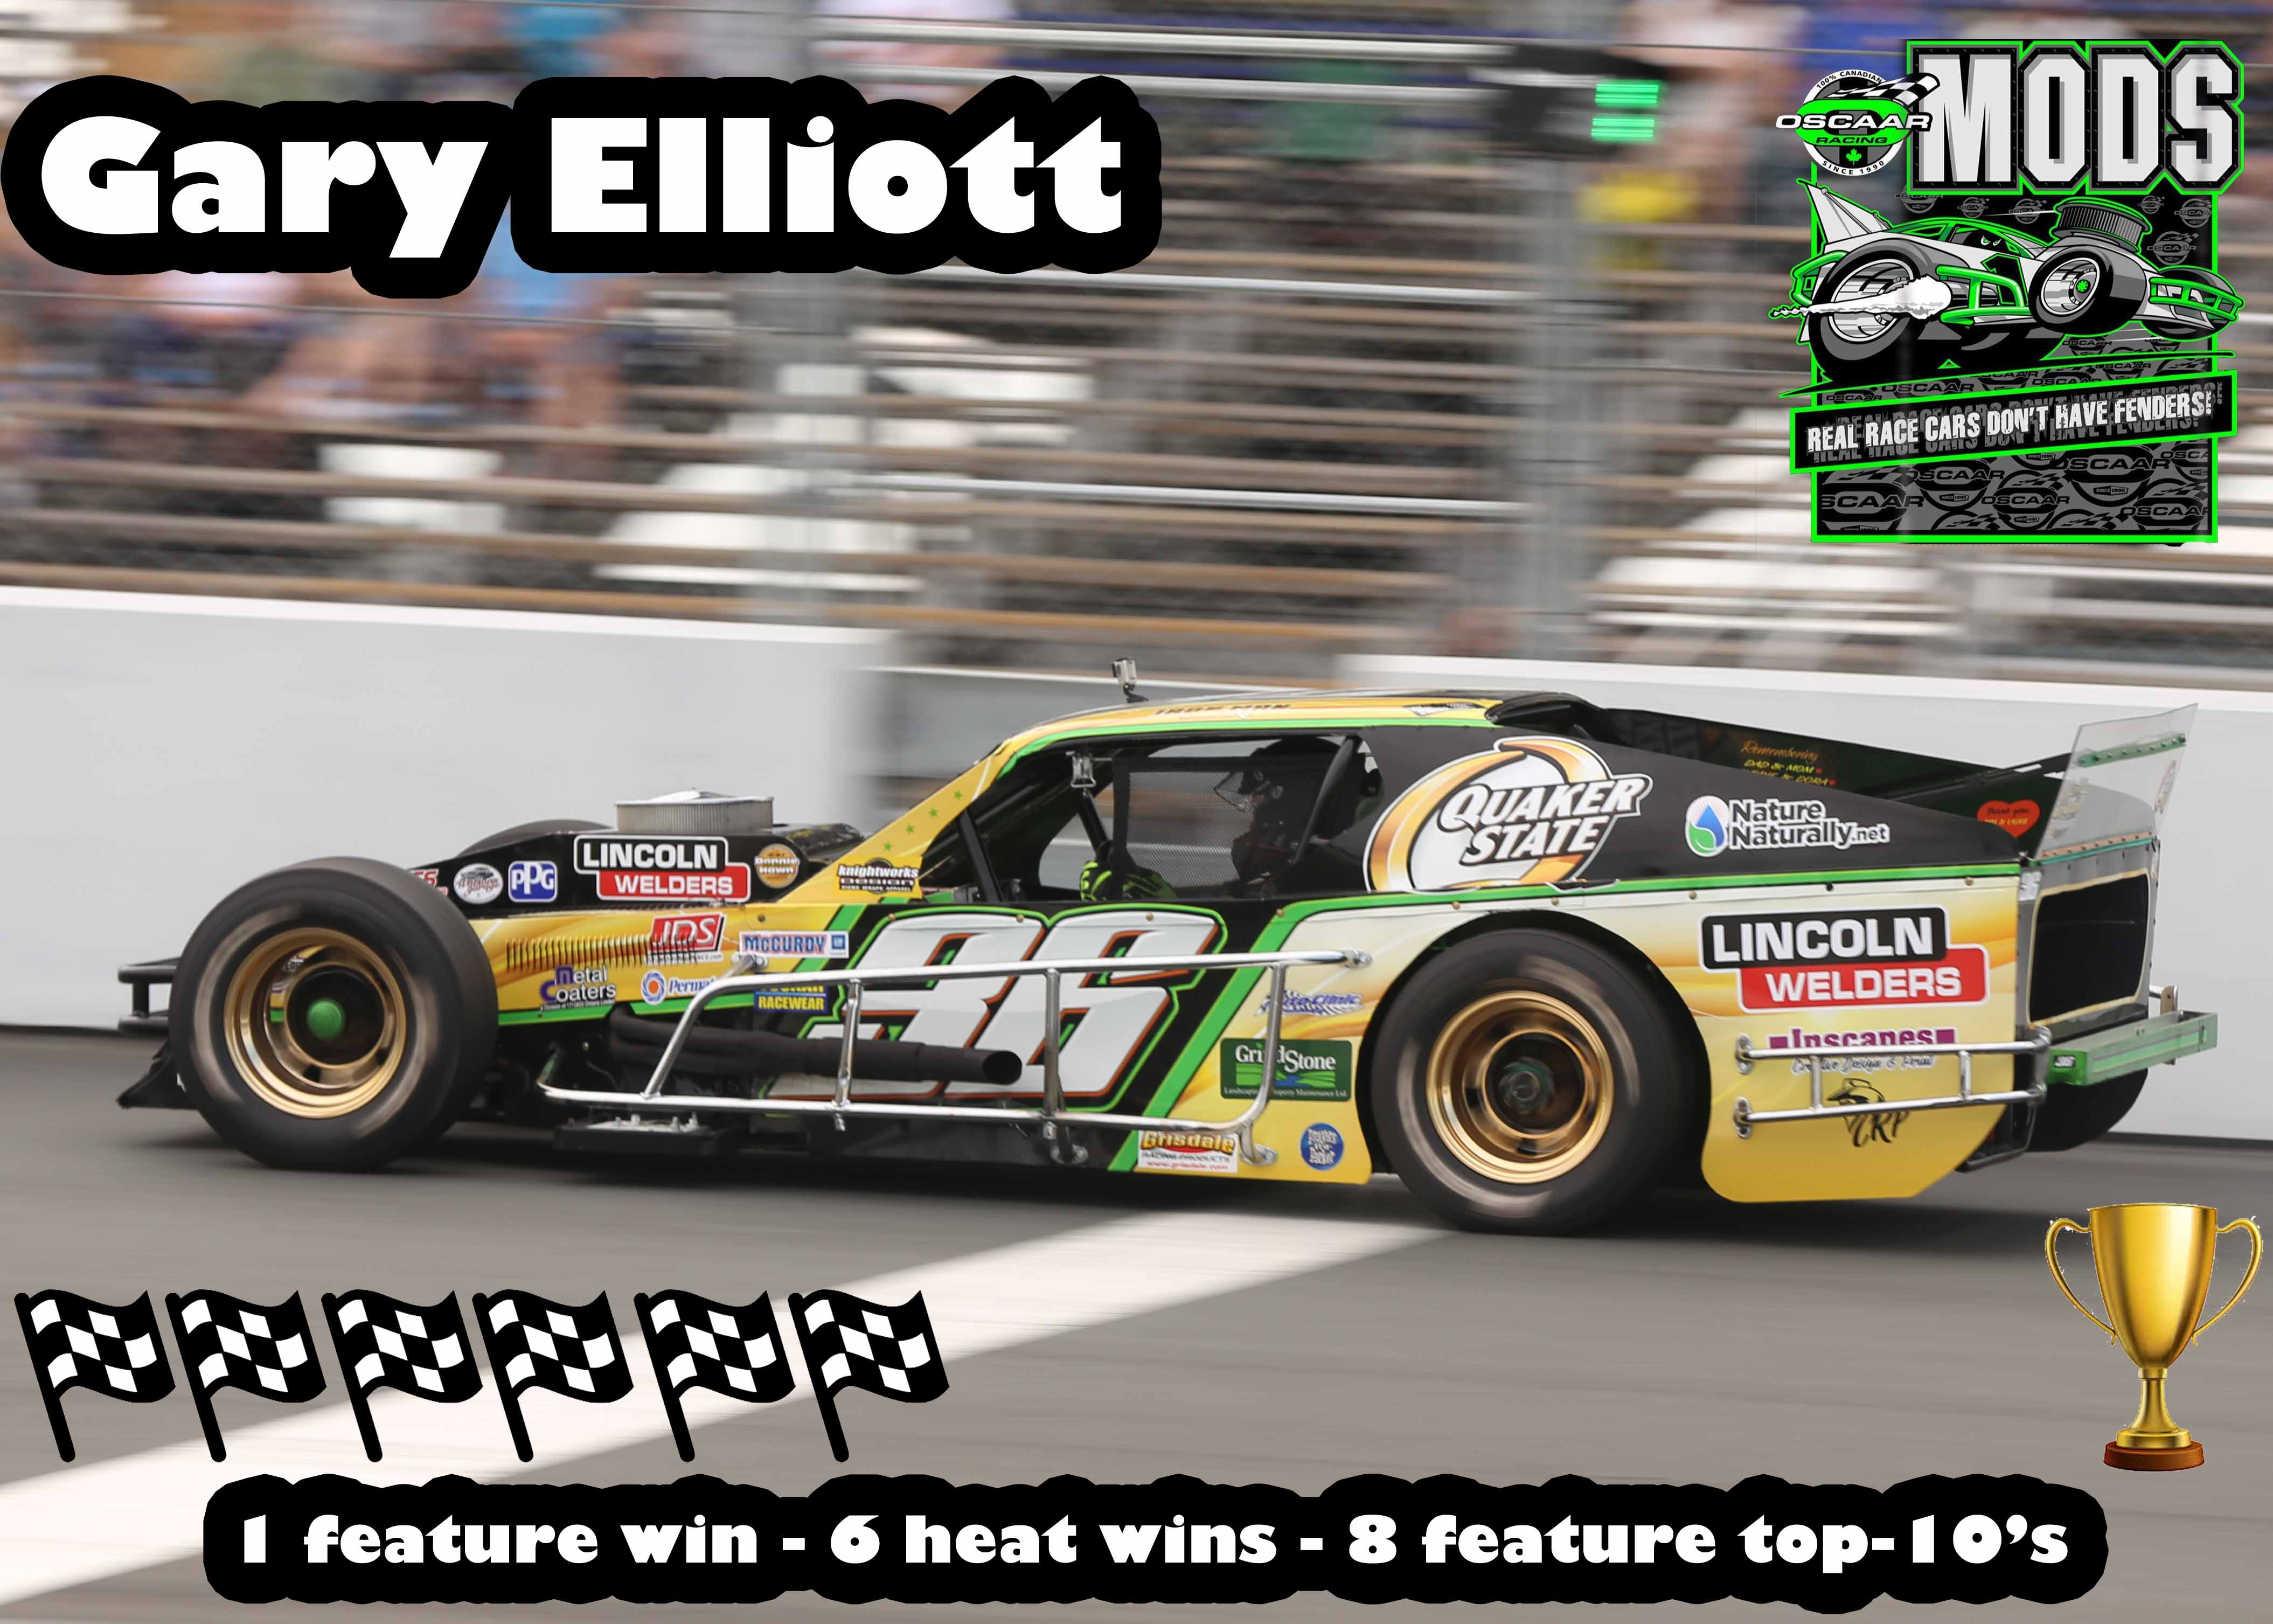 4th Modified Gary Elliott